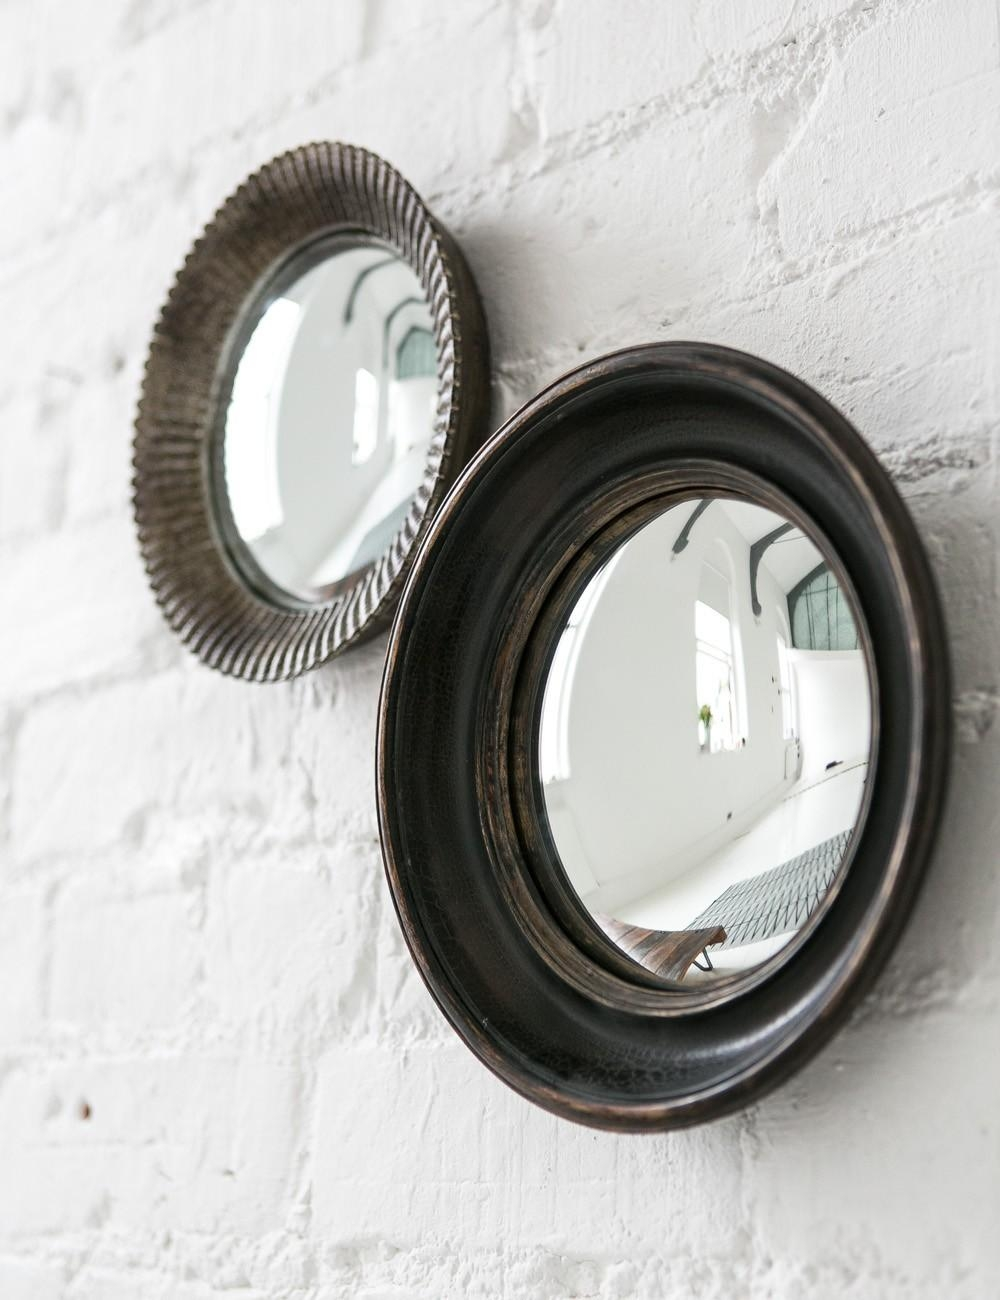 Small Convex Mirror For Creating Striking Wall Decoration | Homesfeed With Regard To Small Convex Mirrors For Sale (Image 17 of 20)